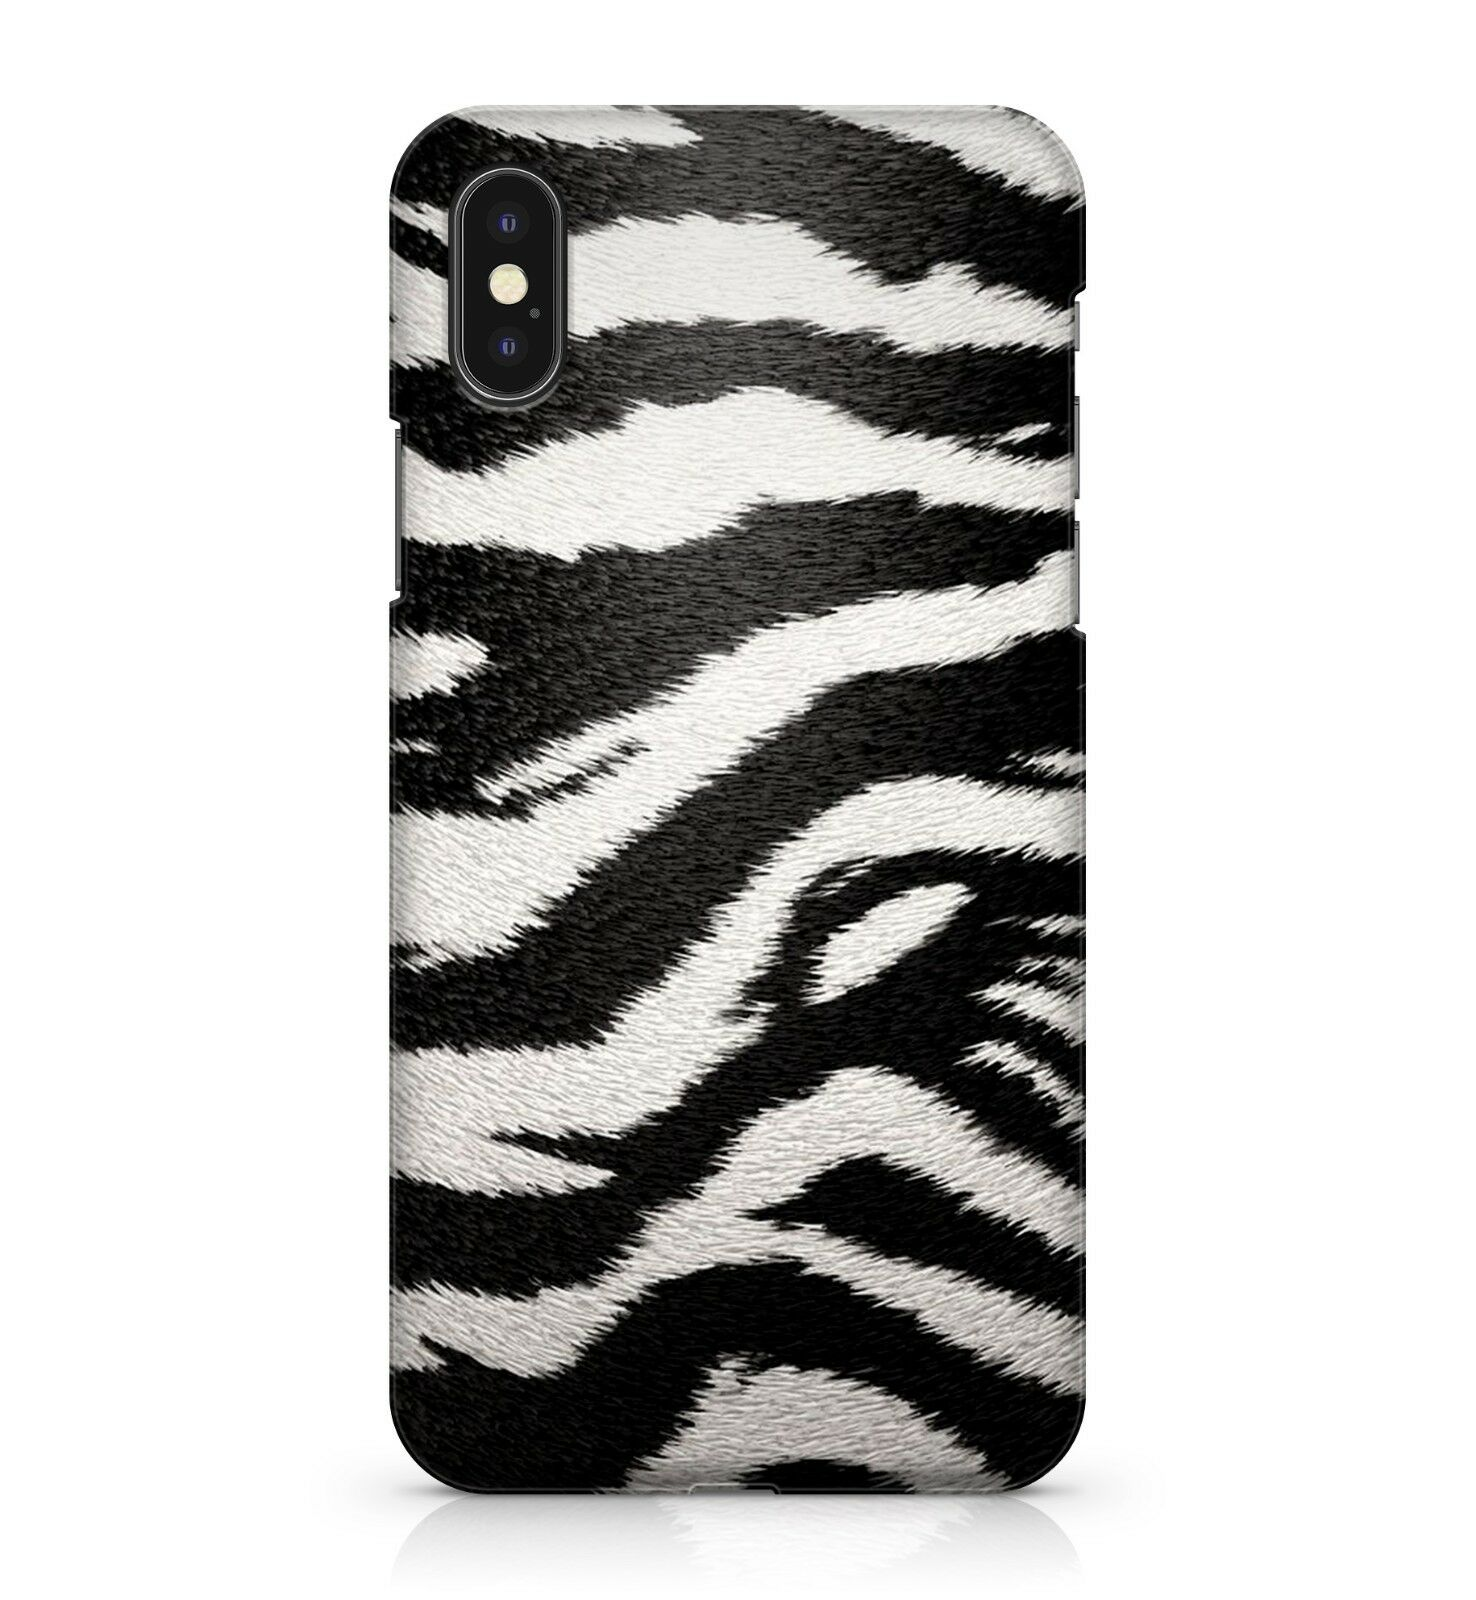 buy online 23a69 a4c0e Details about Fluffy Furry Black White Zebra Animal Camo Soldier Army Print  Phone Case Cover